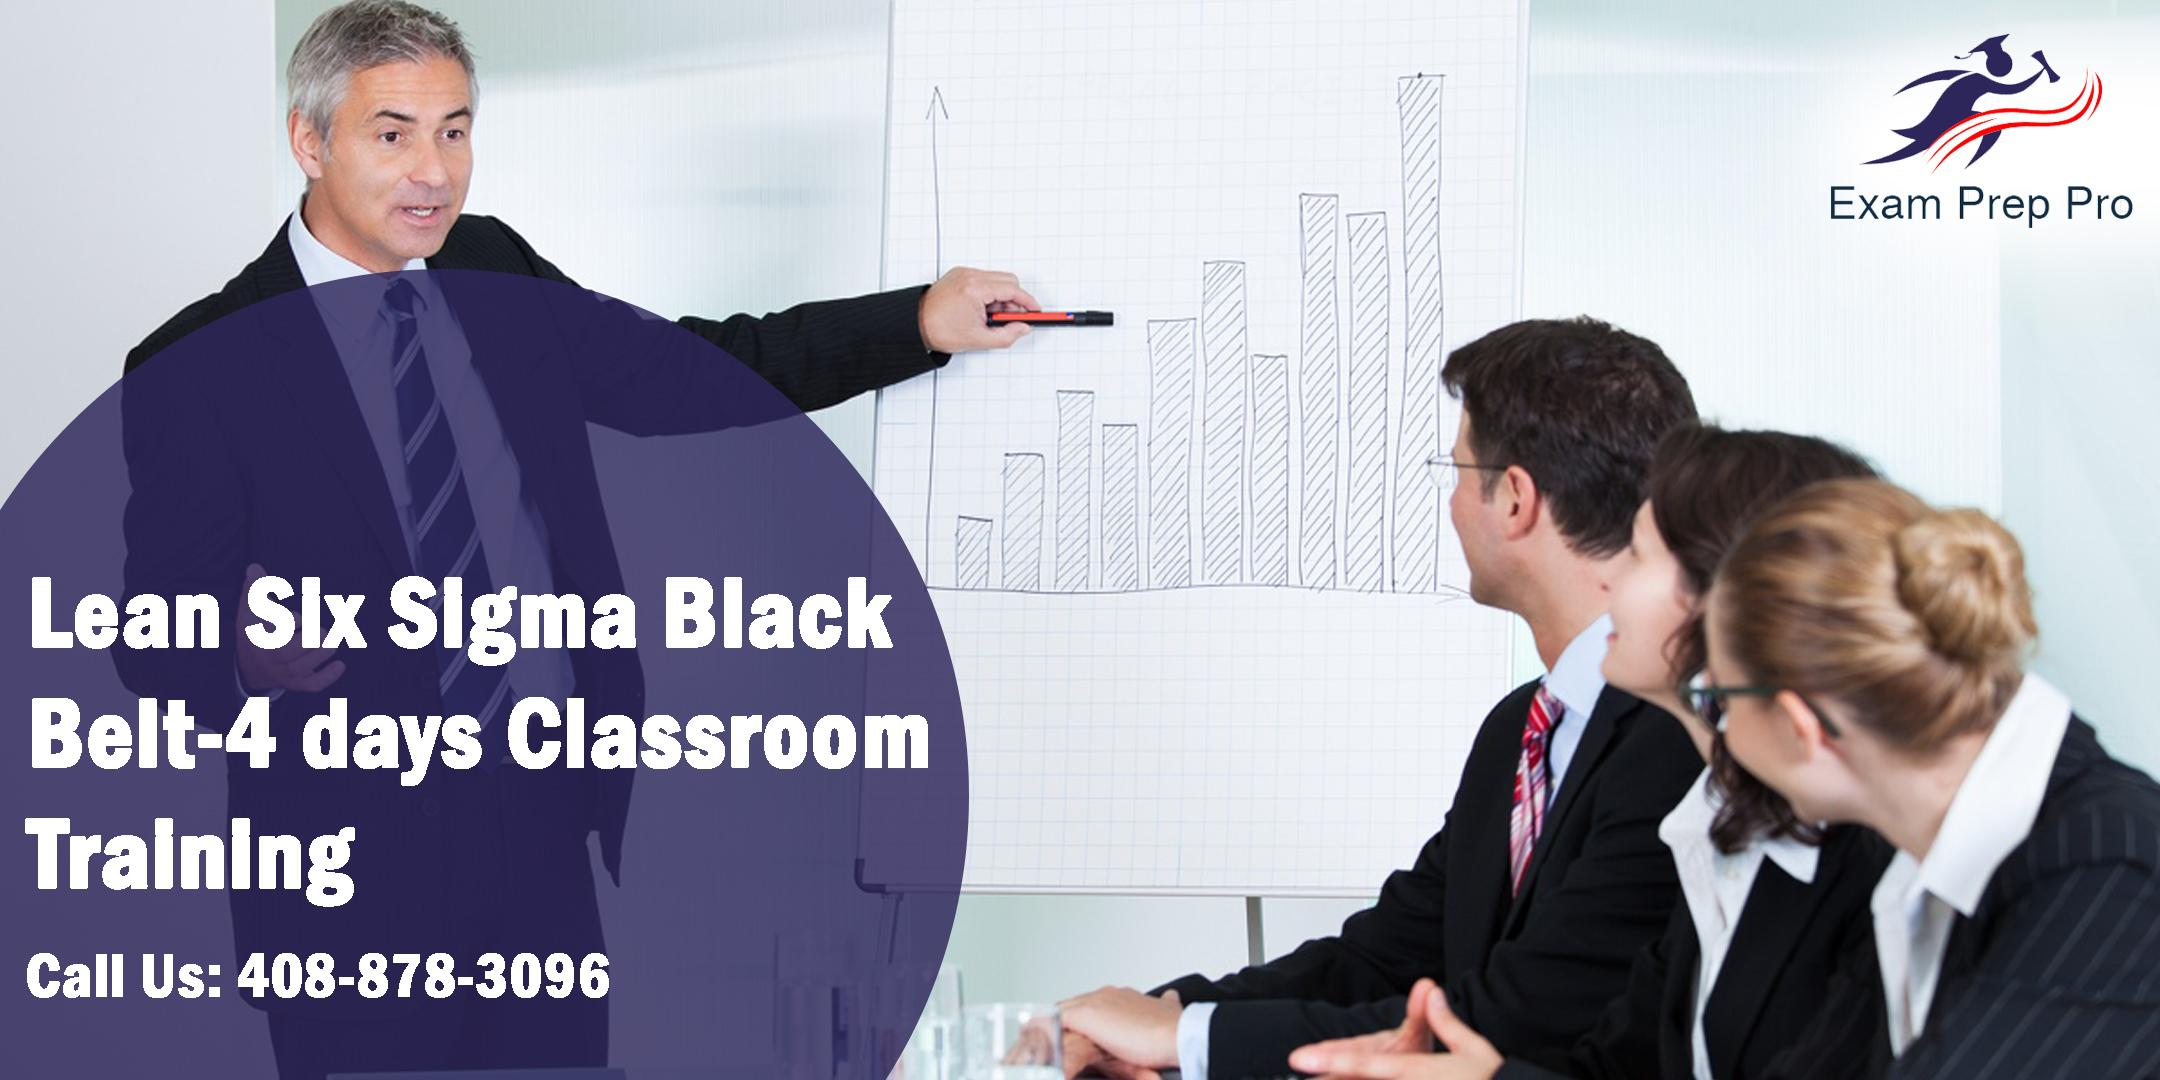 Lean Six Sigma Black Belt-4 days Classroom Training in Tampa, FL